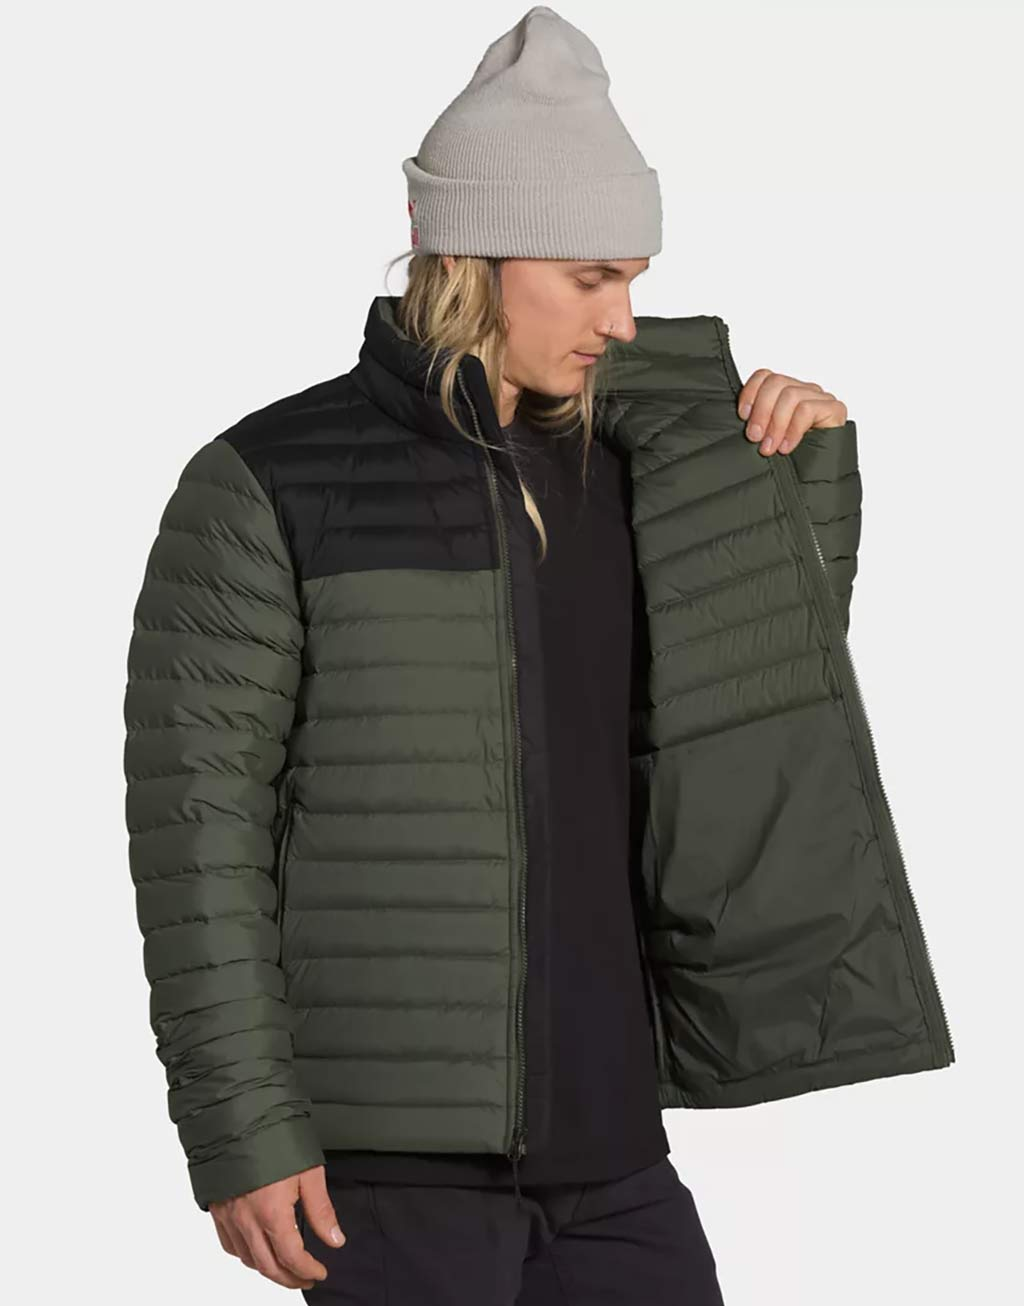 The Best North Face Jackets 11